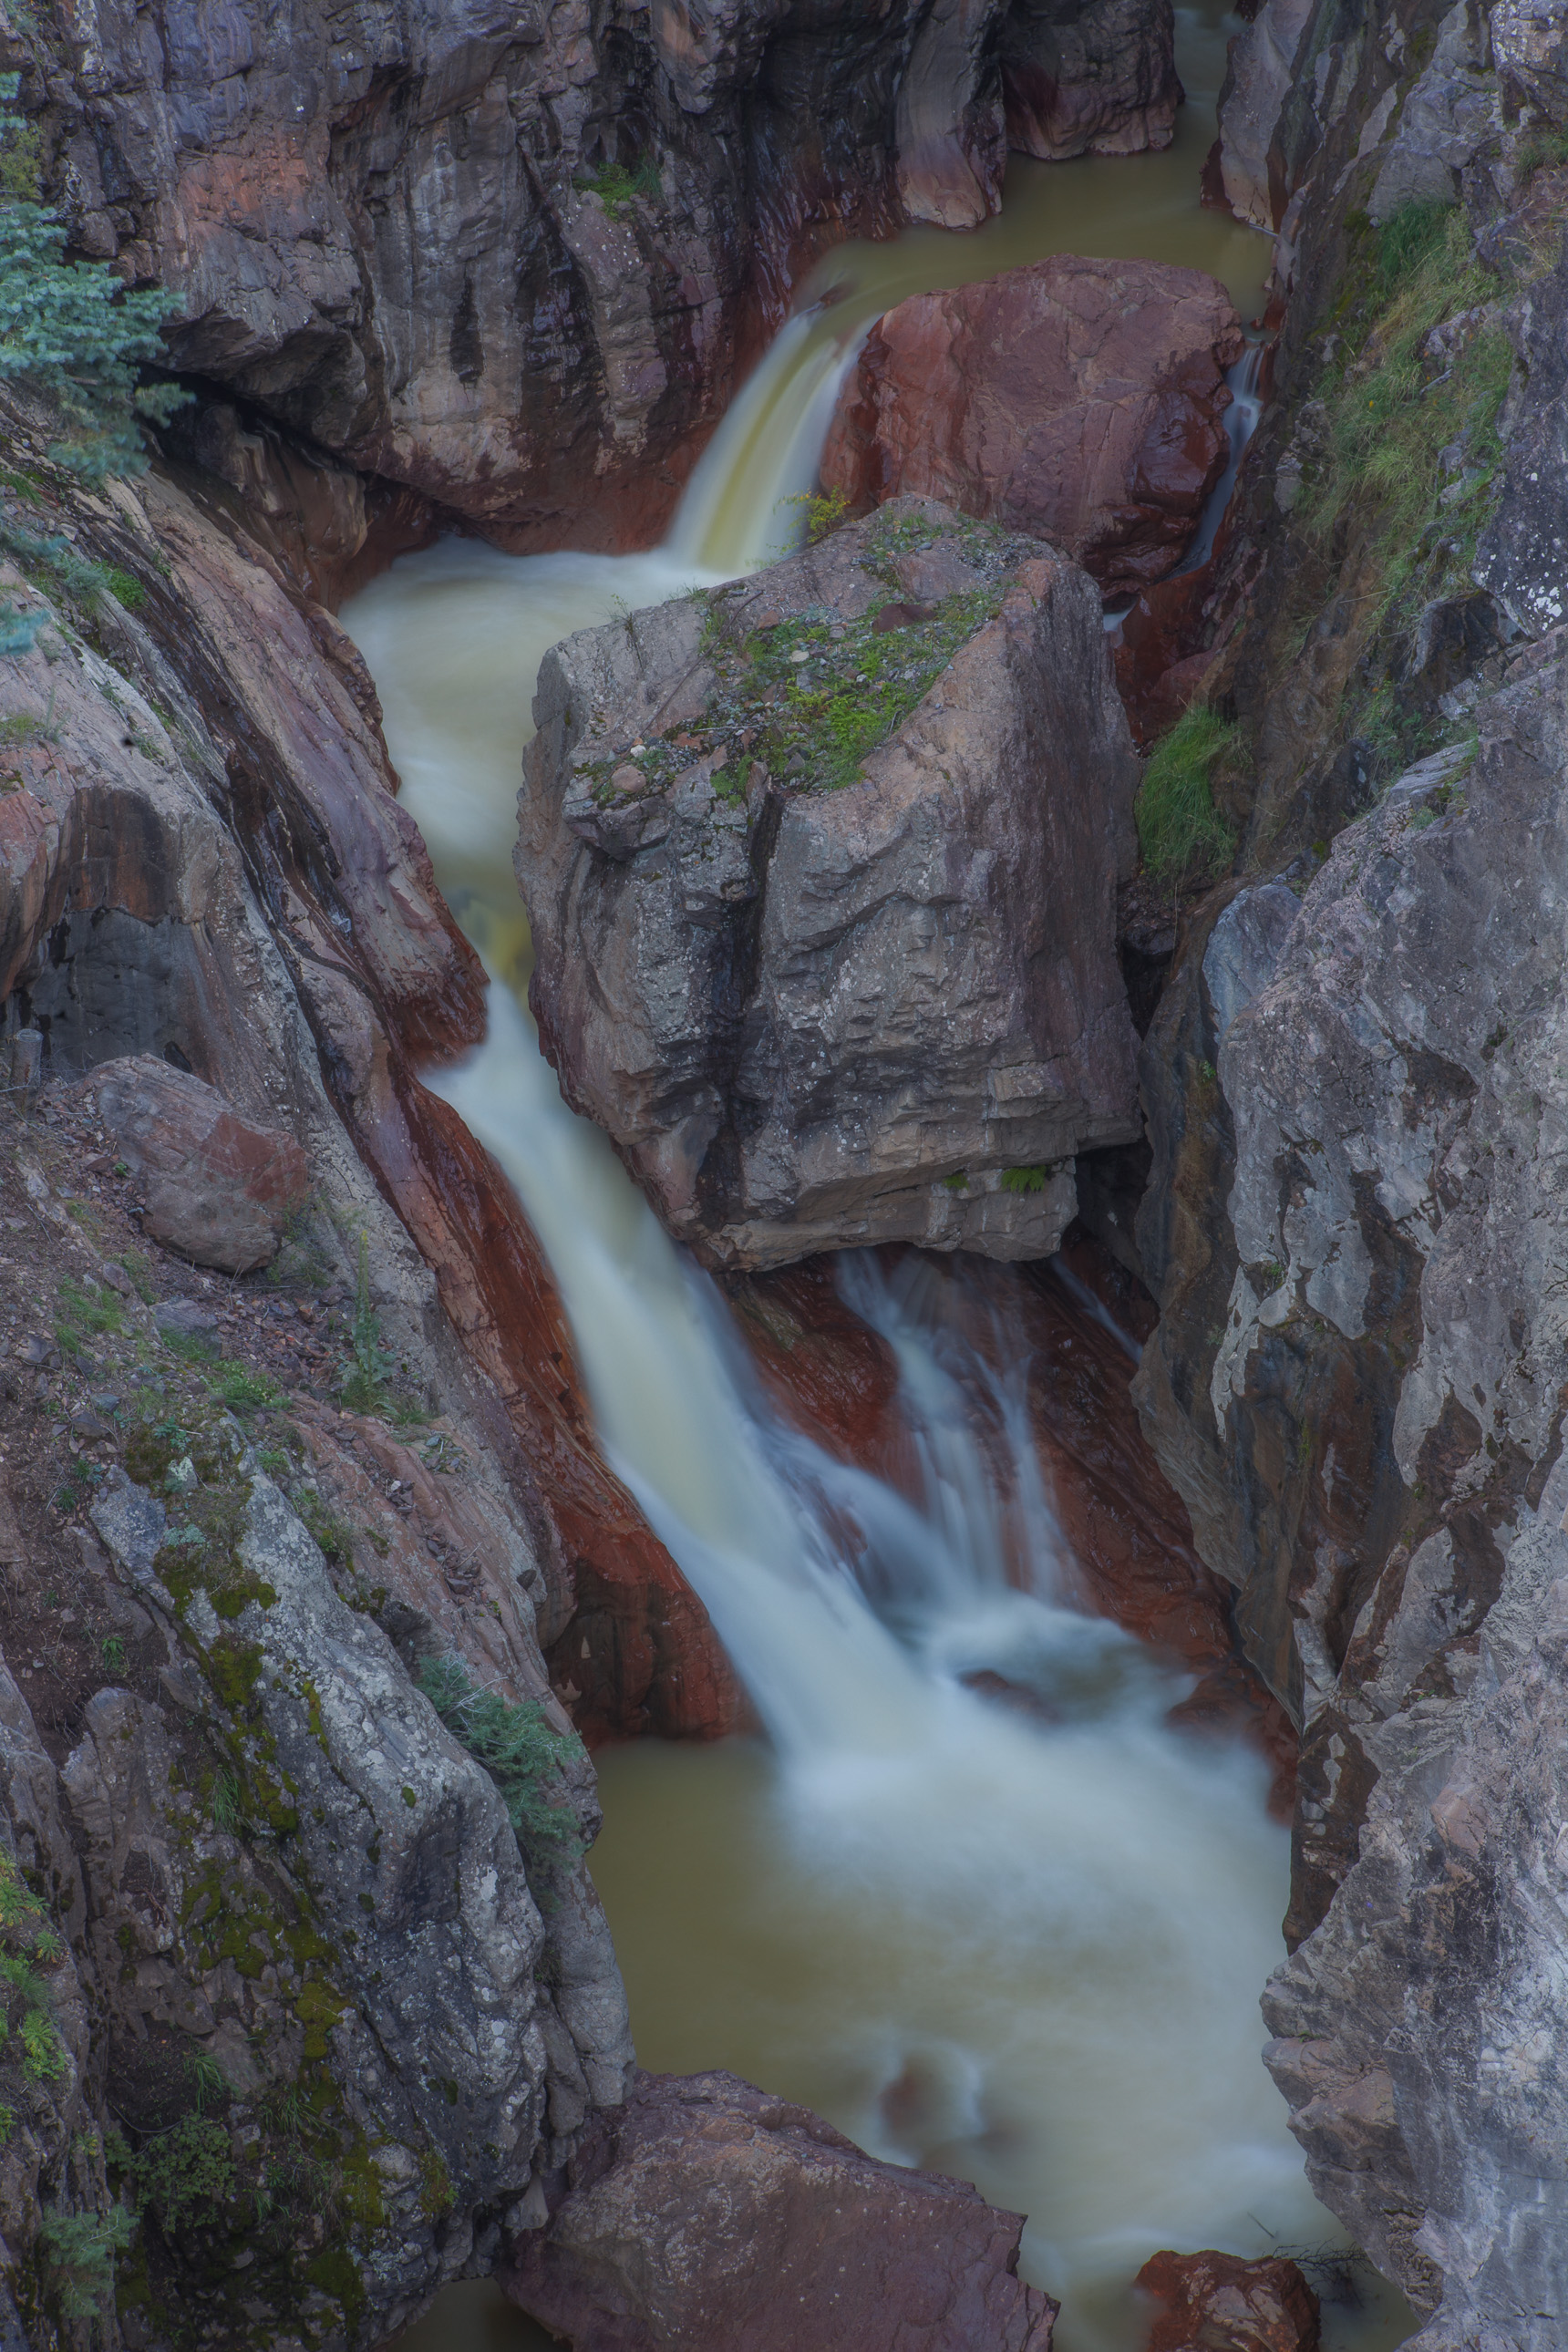 Box Canyon waterfall in Ouray Colorado